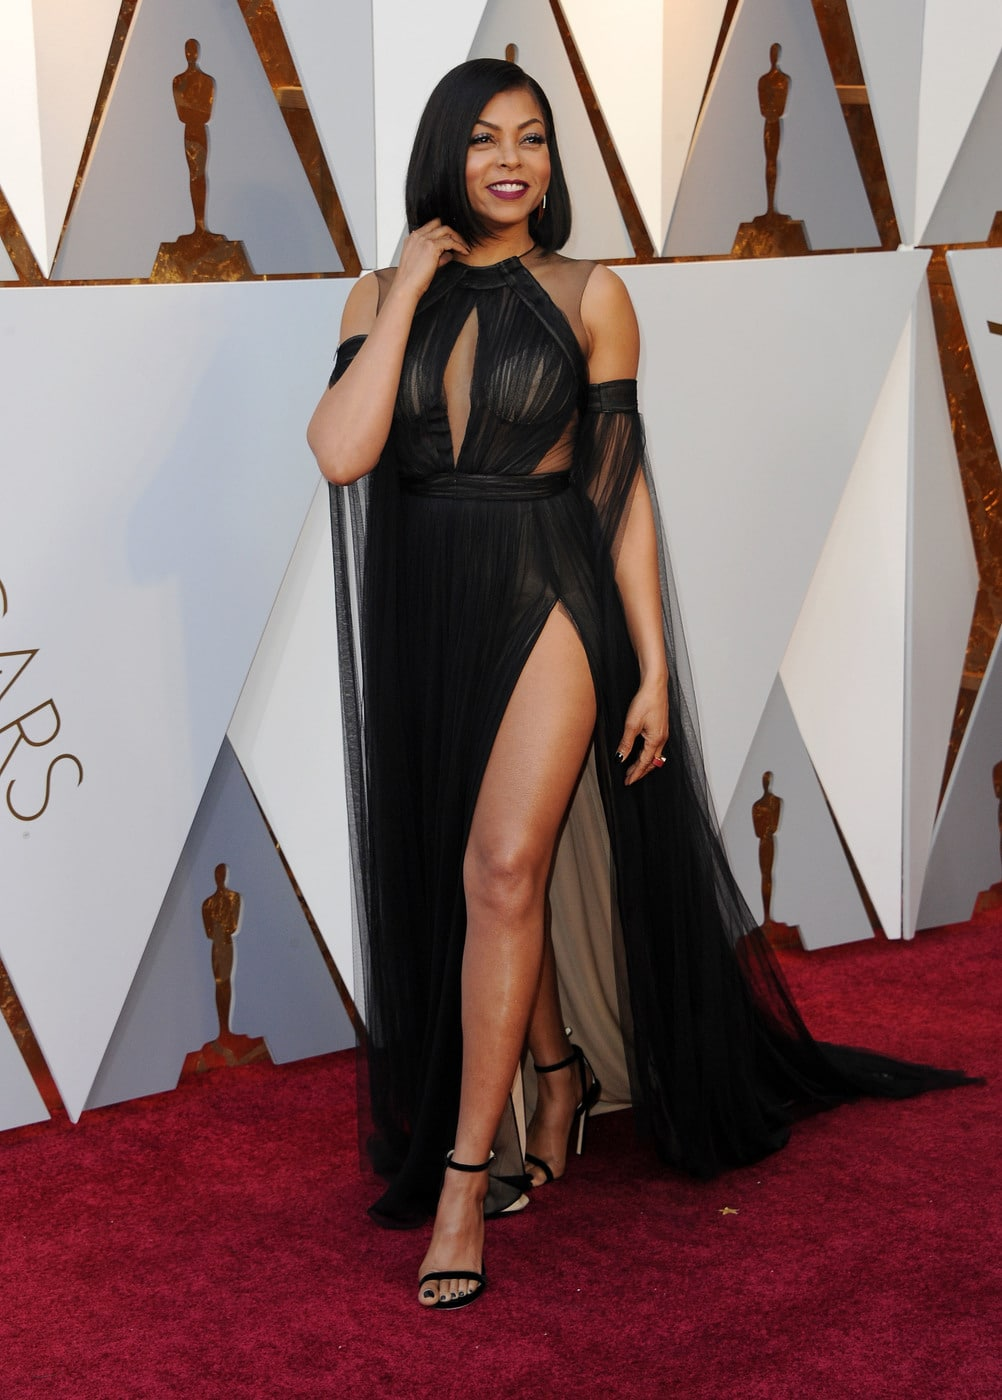 Taraji P. Henson in Vera Wang a the 2018 Oscars